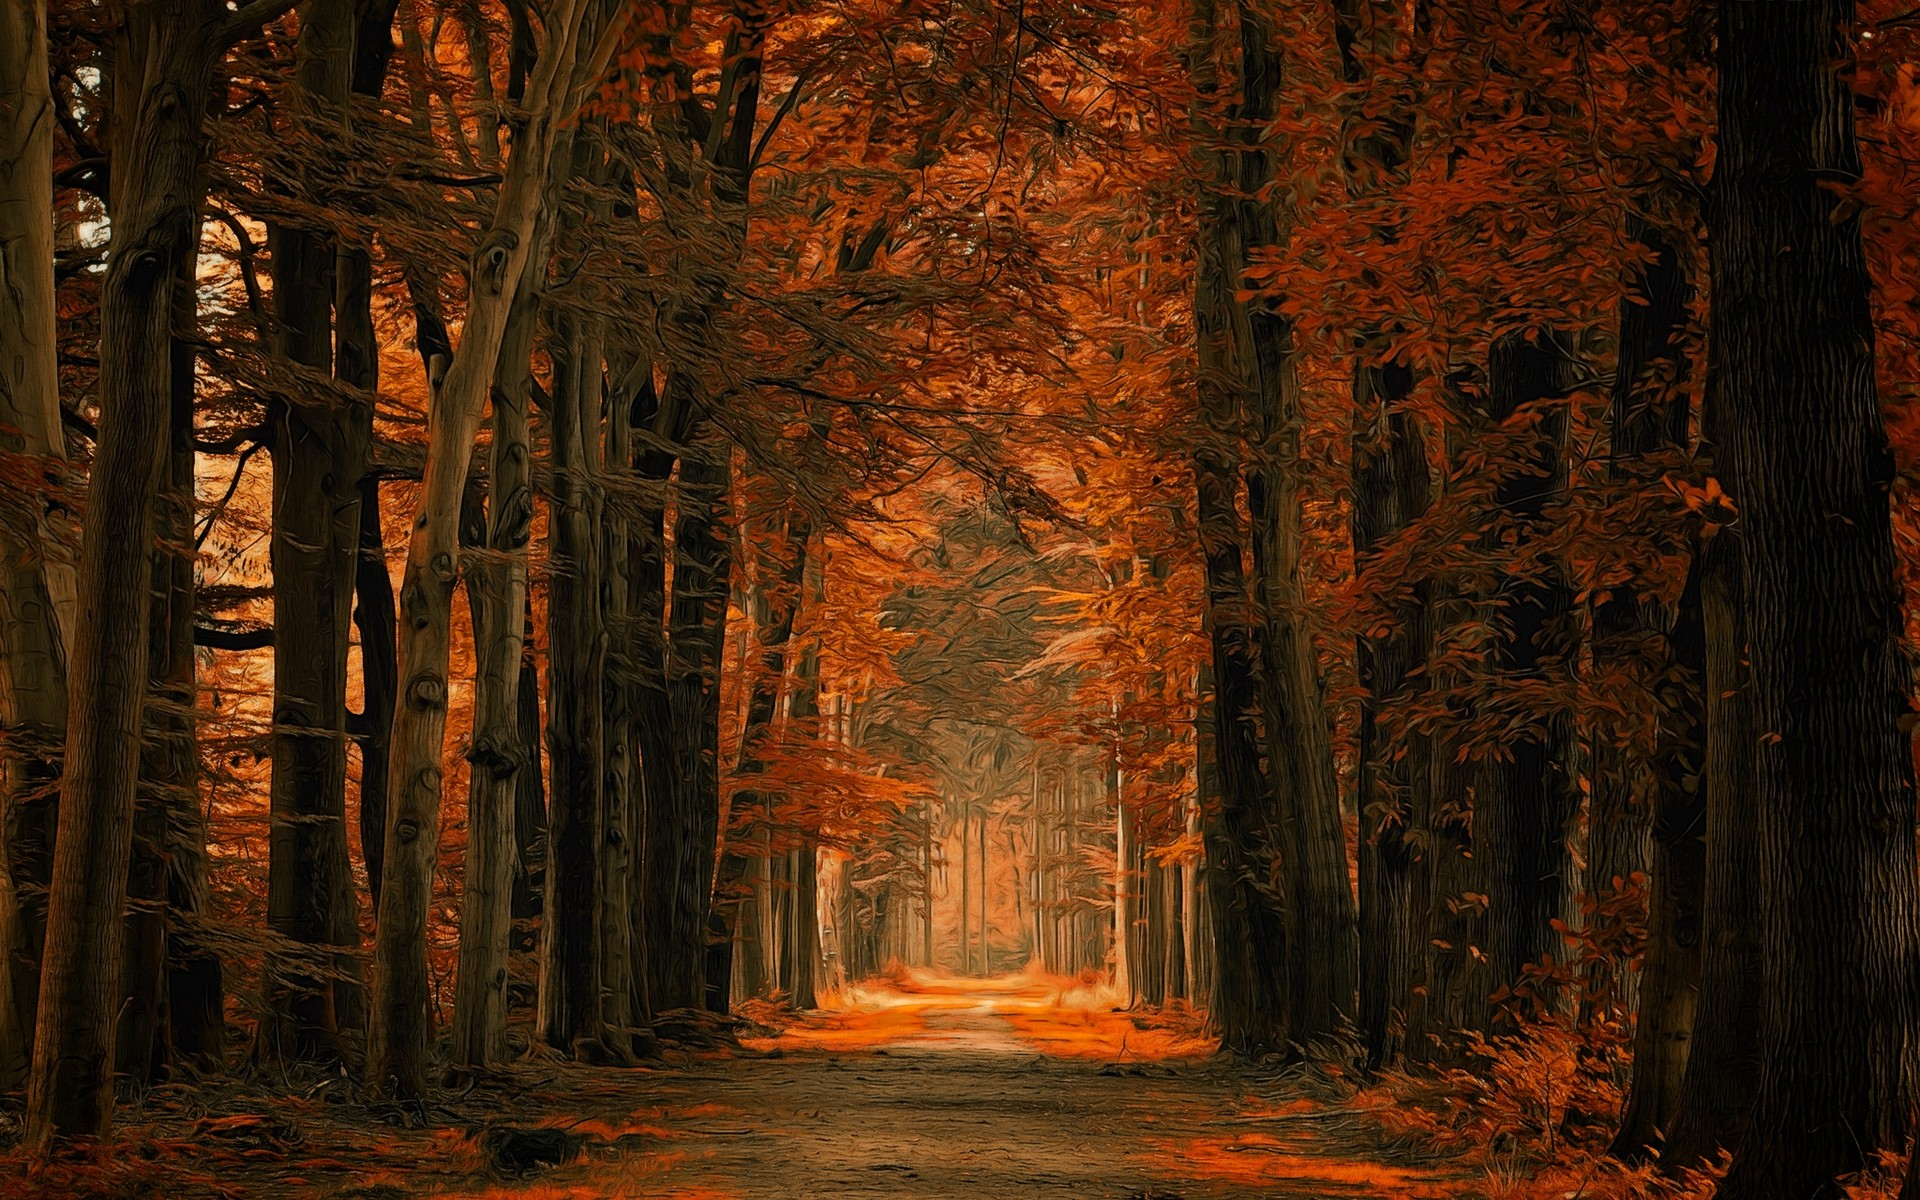 General 1920x1200 nature landscape fall dirt road forest path leaves trees Netherlands amber sunlight